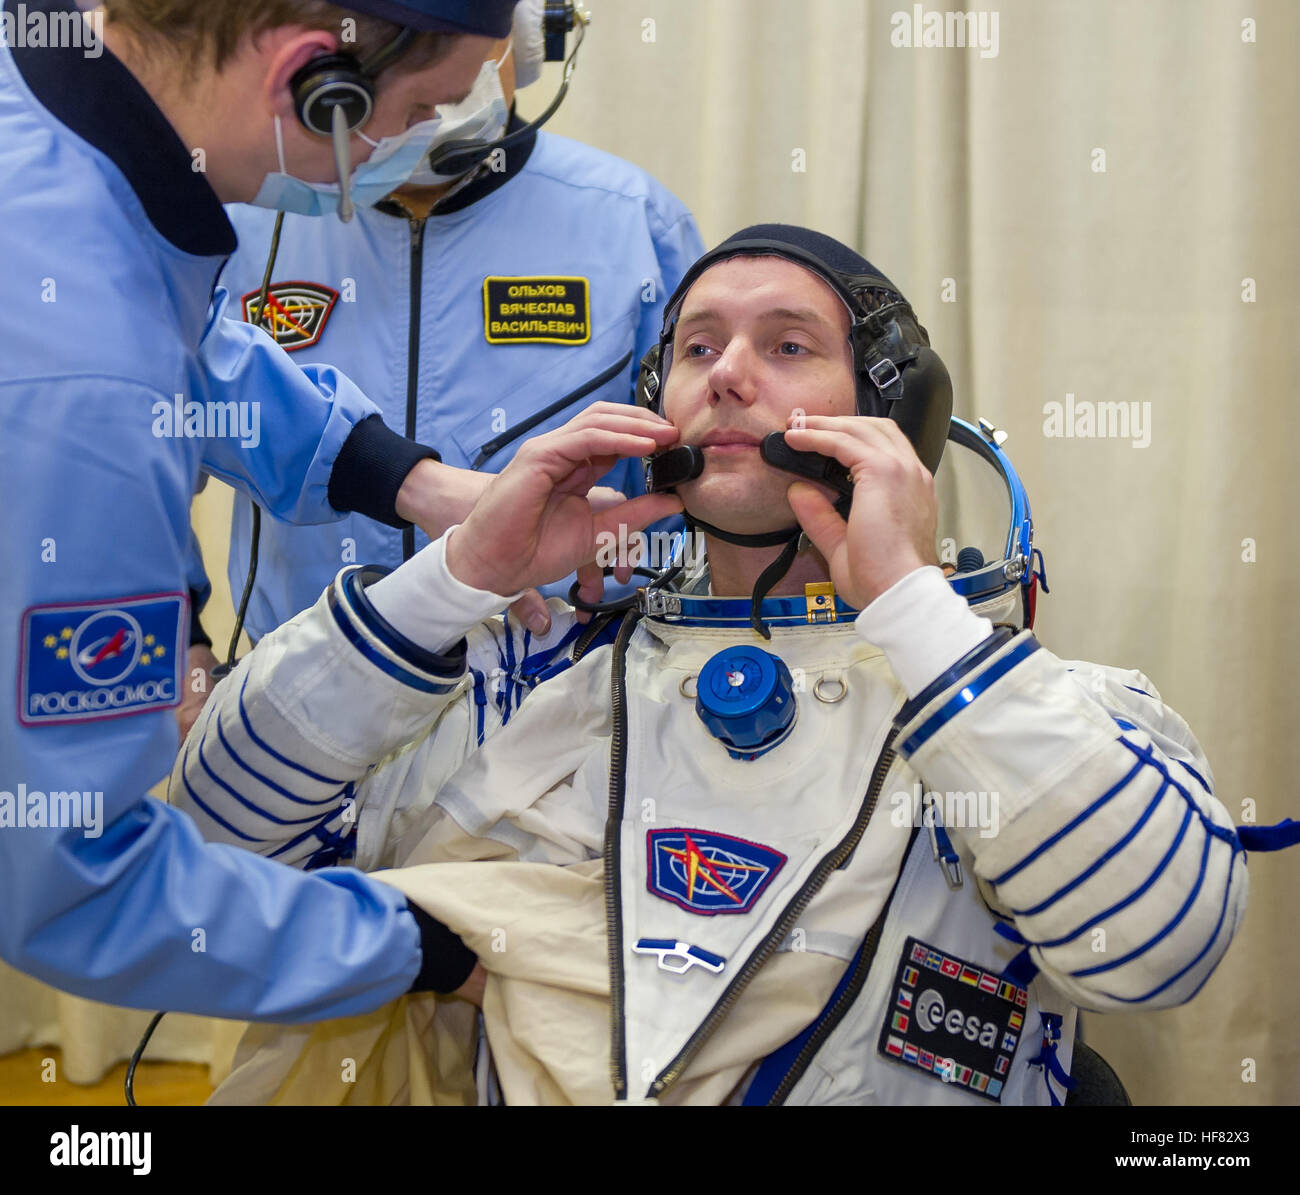 Expedition 50 ESA astronaut Thomas Pesquet is seen donning his Russian sokol suit a few hours ahead of his launch - Stock Image